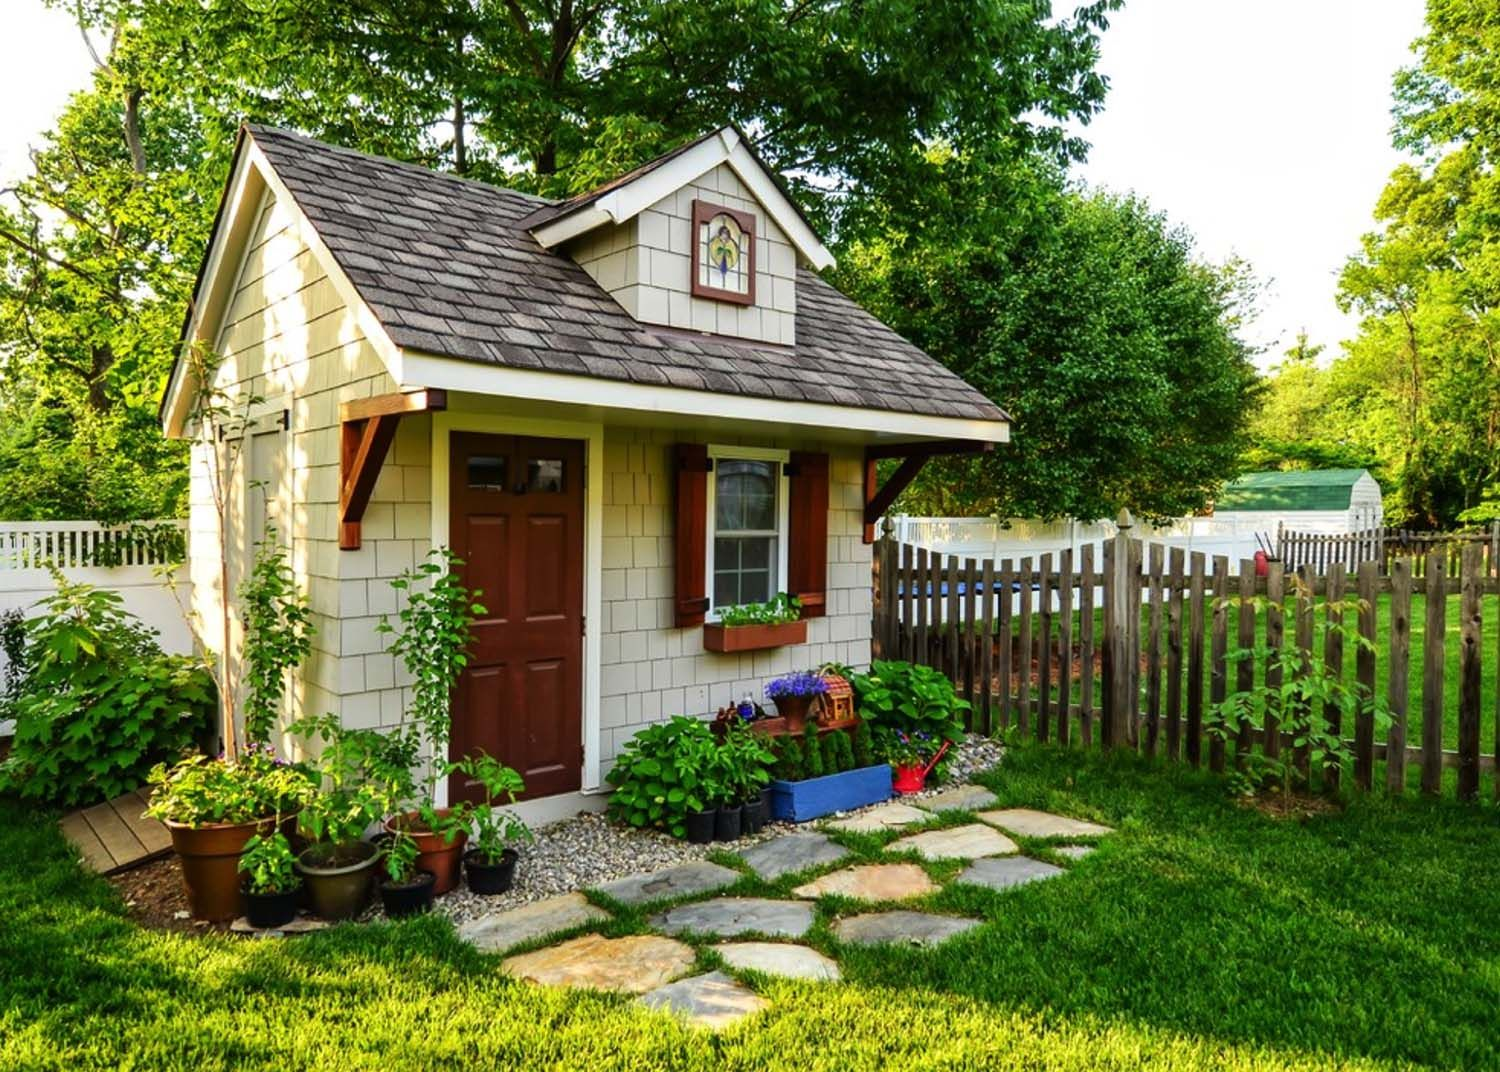 40 Simply amazing garden shed ideas | Amazing gardens, Gardens and ...